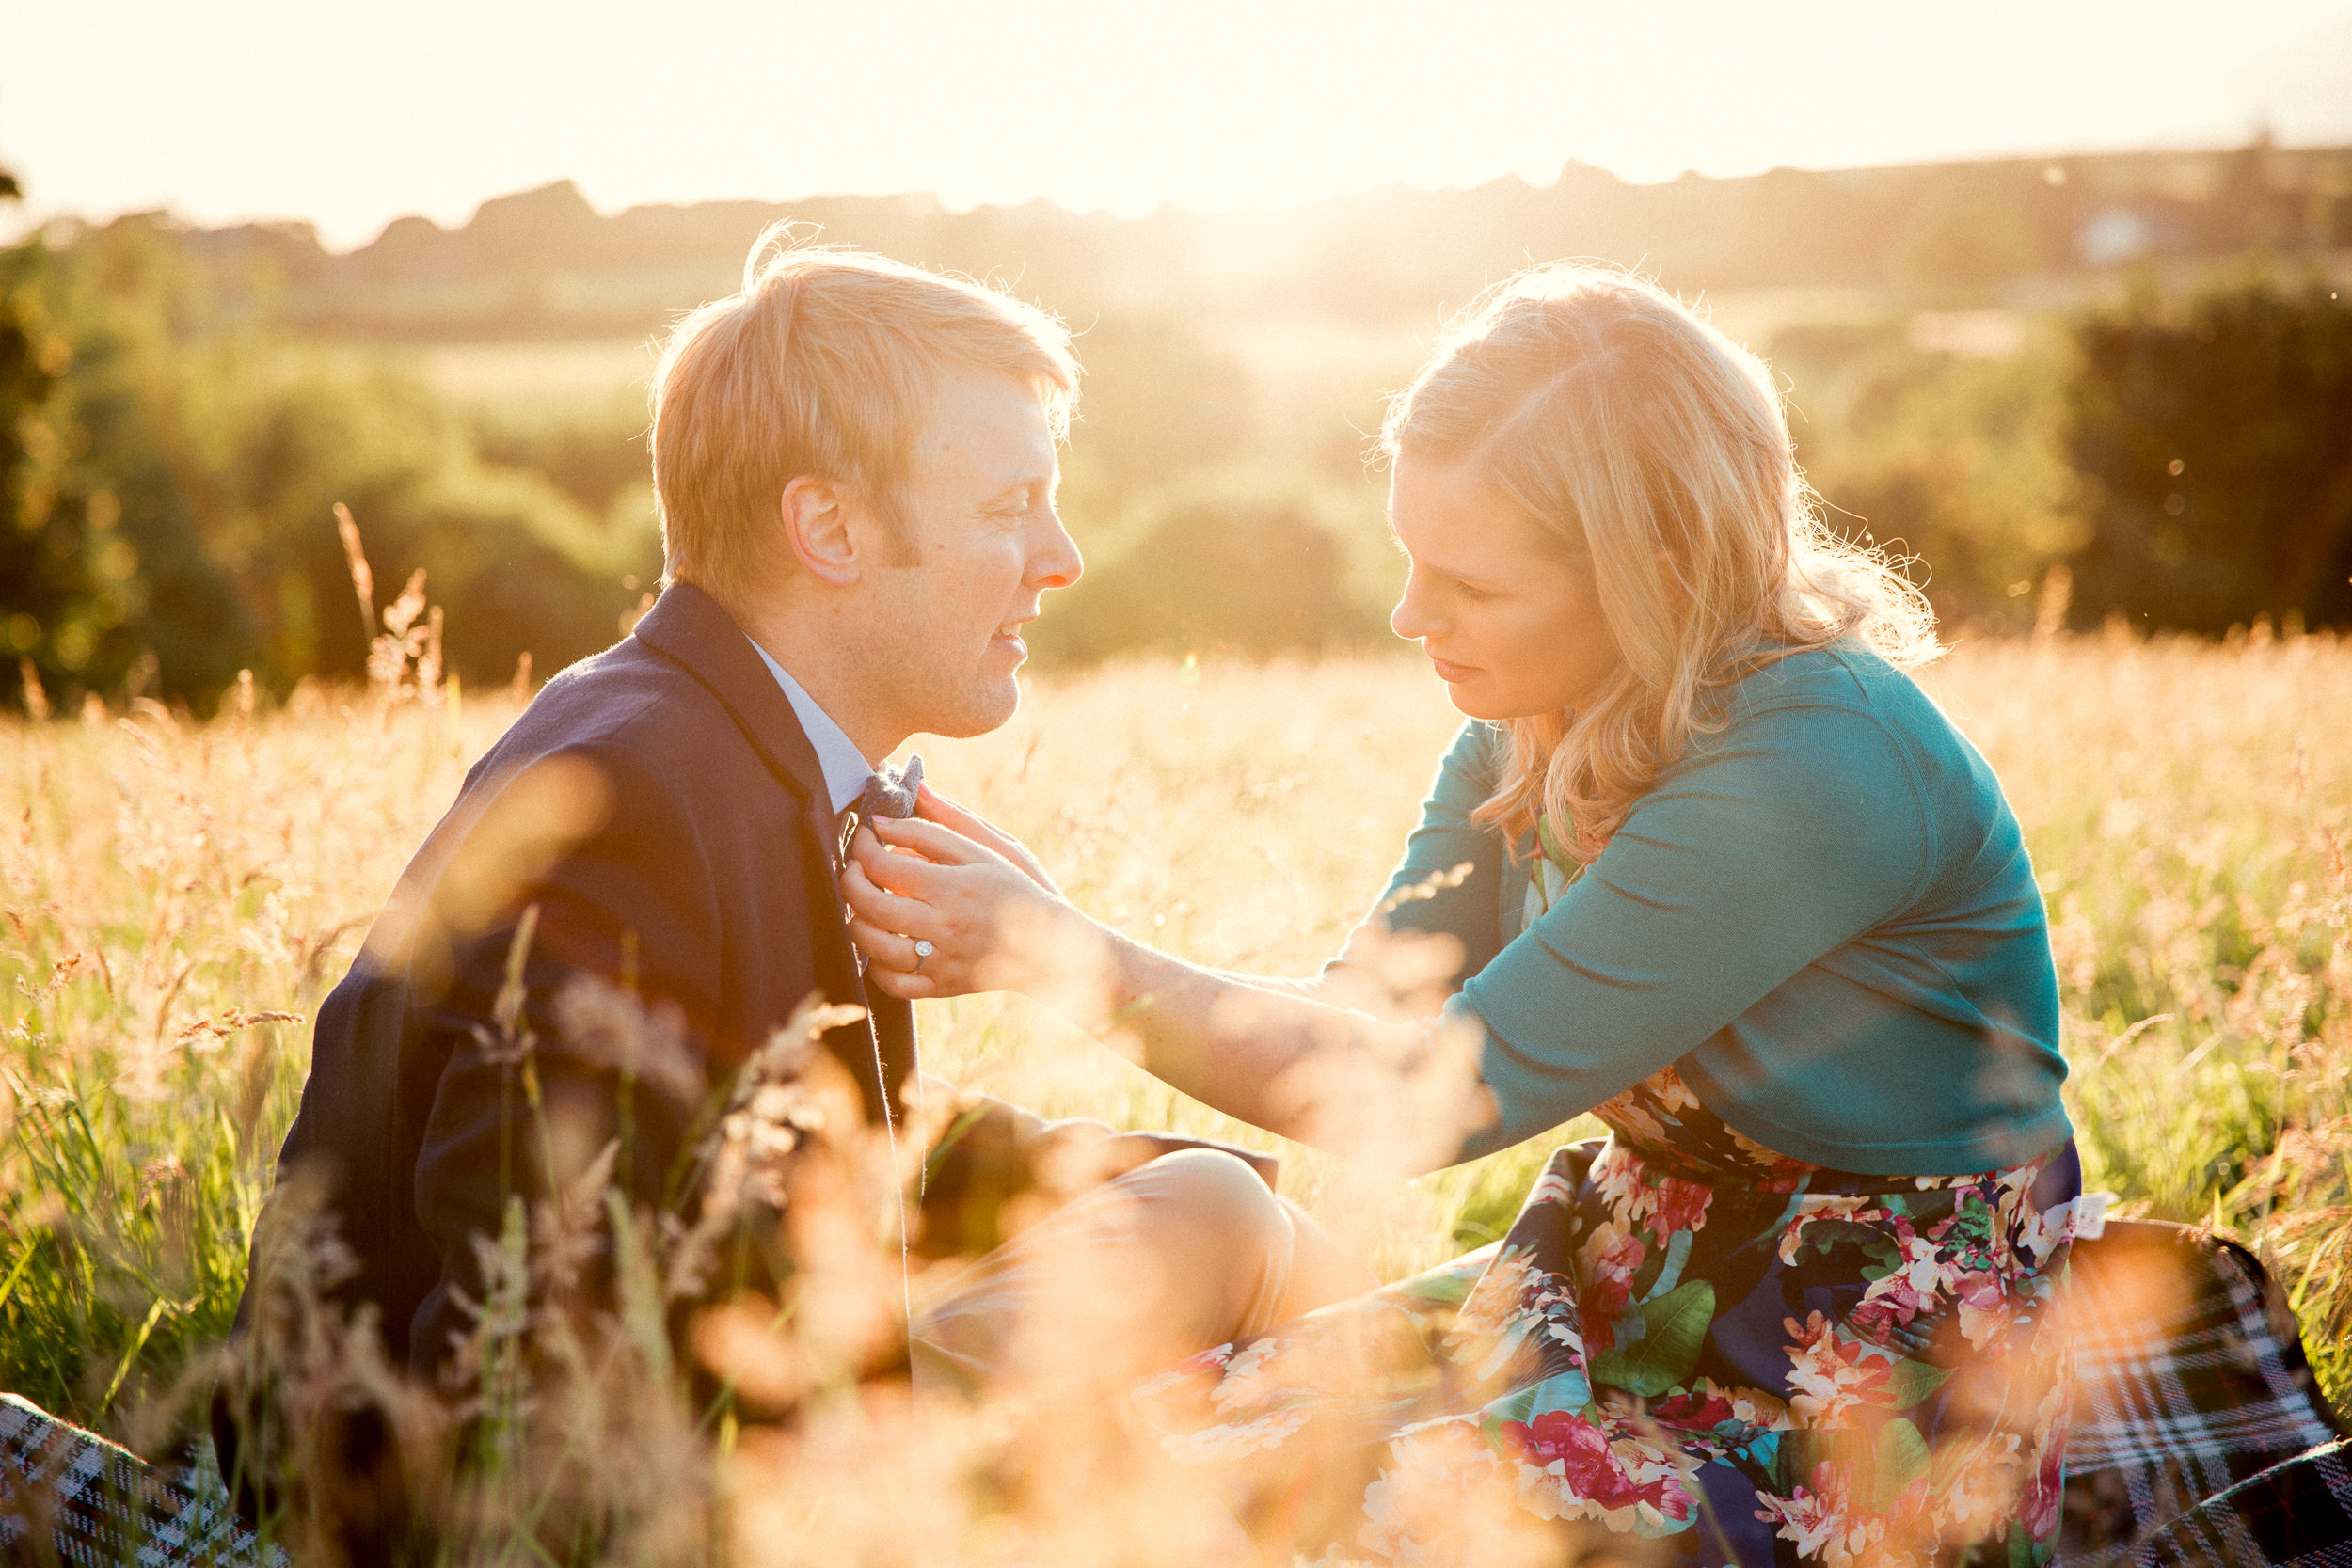 clairebyrnephotography-wedding-photography-ireland-engagement-sunset-farm-horses-46.jpg